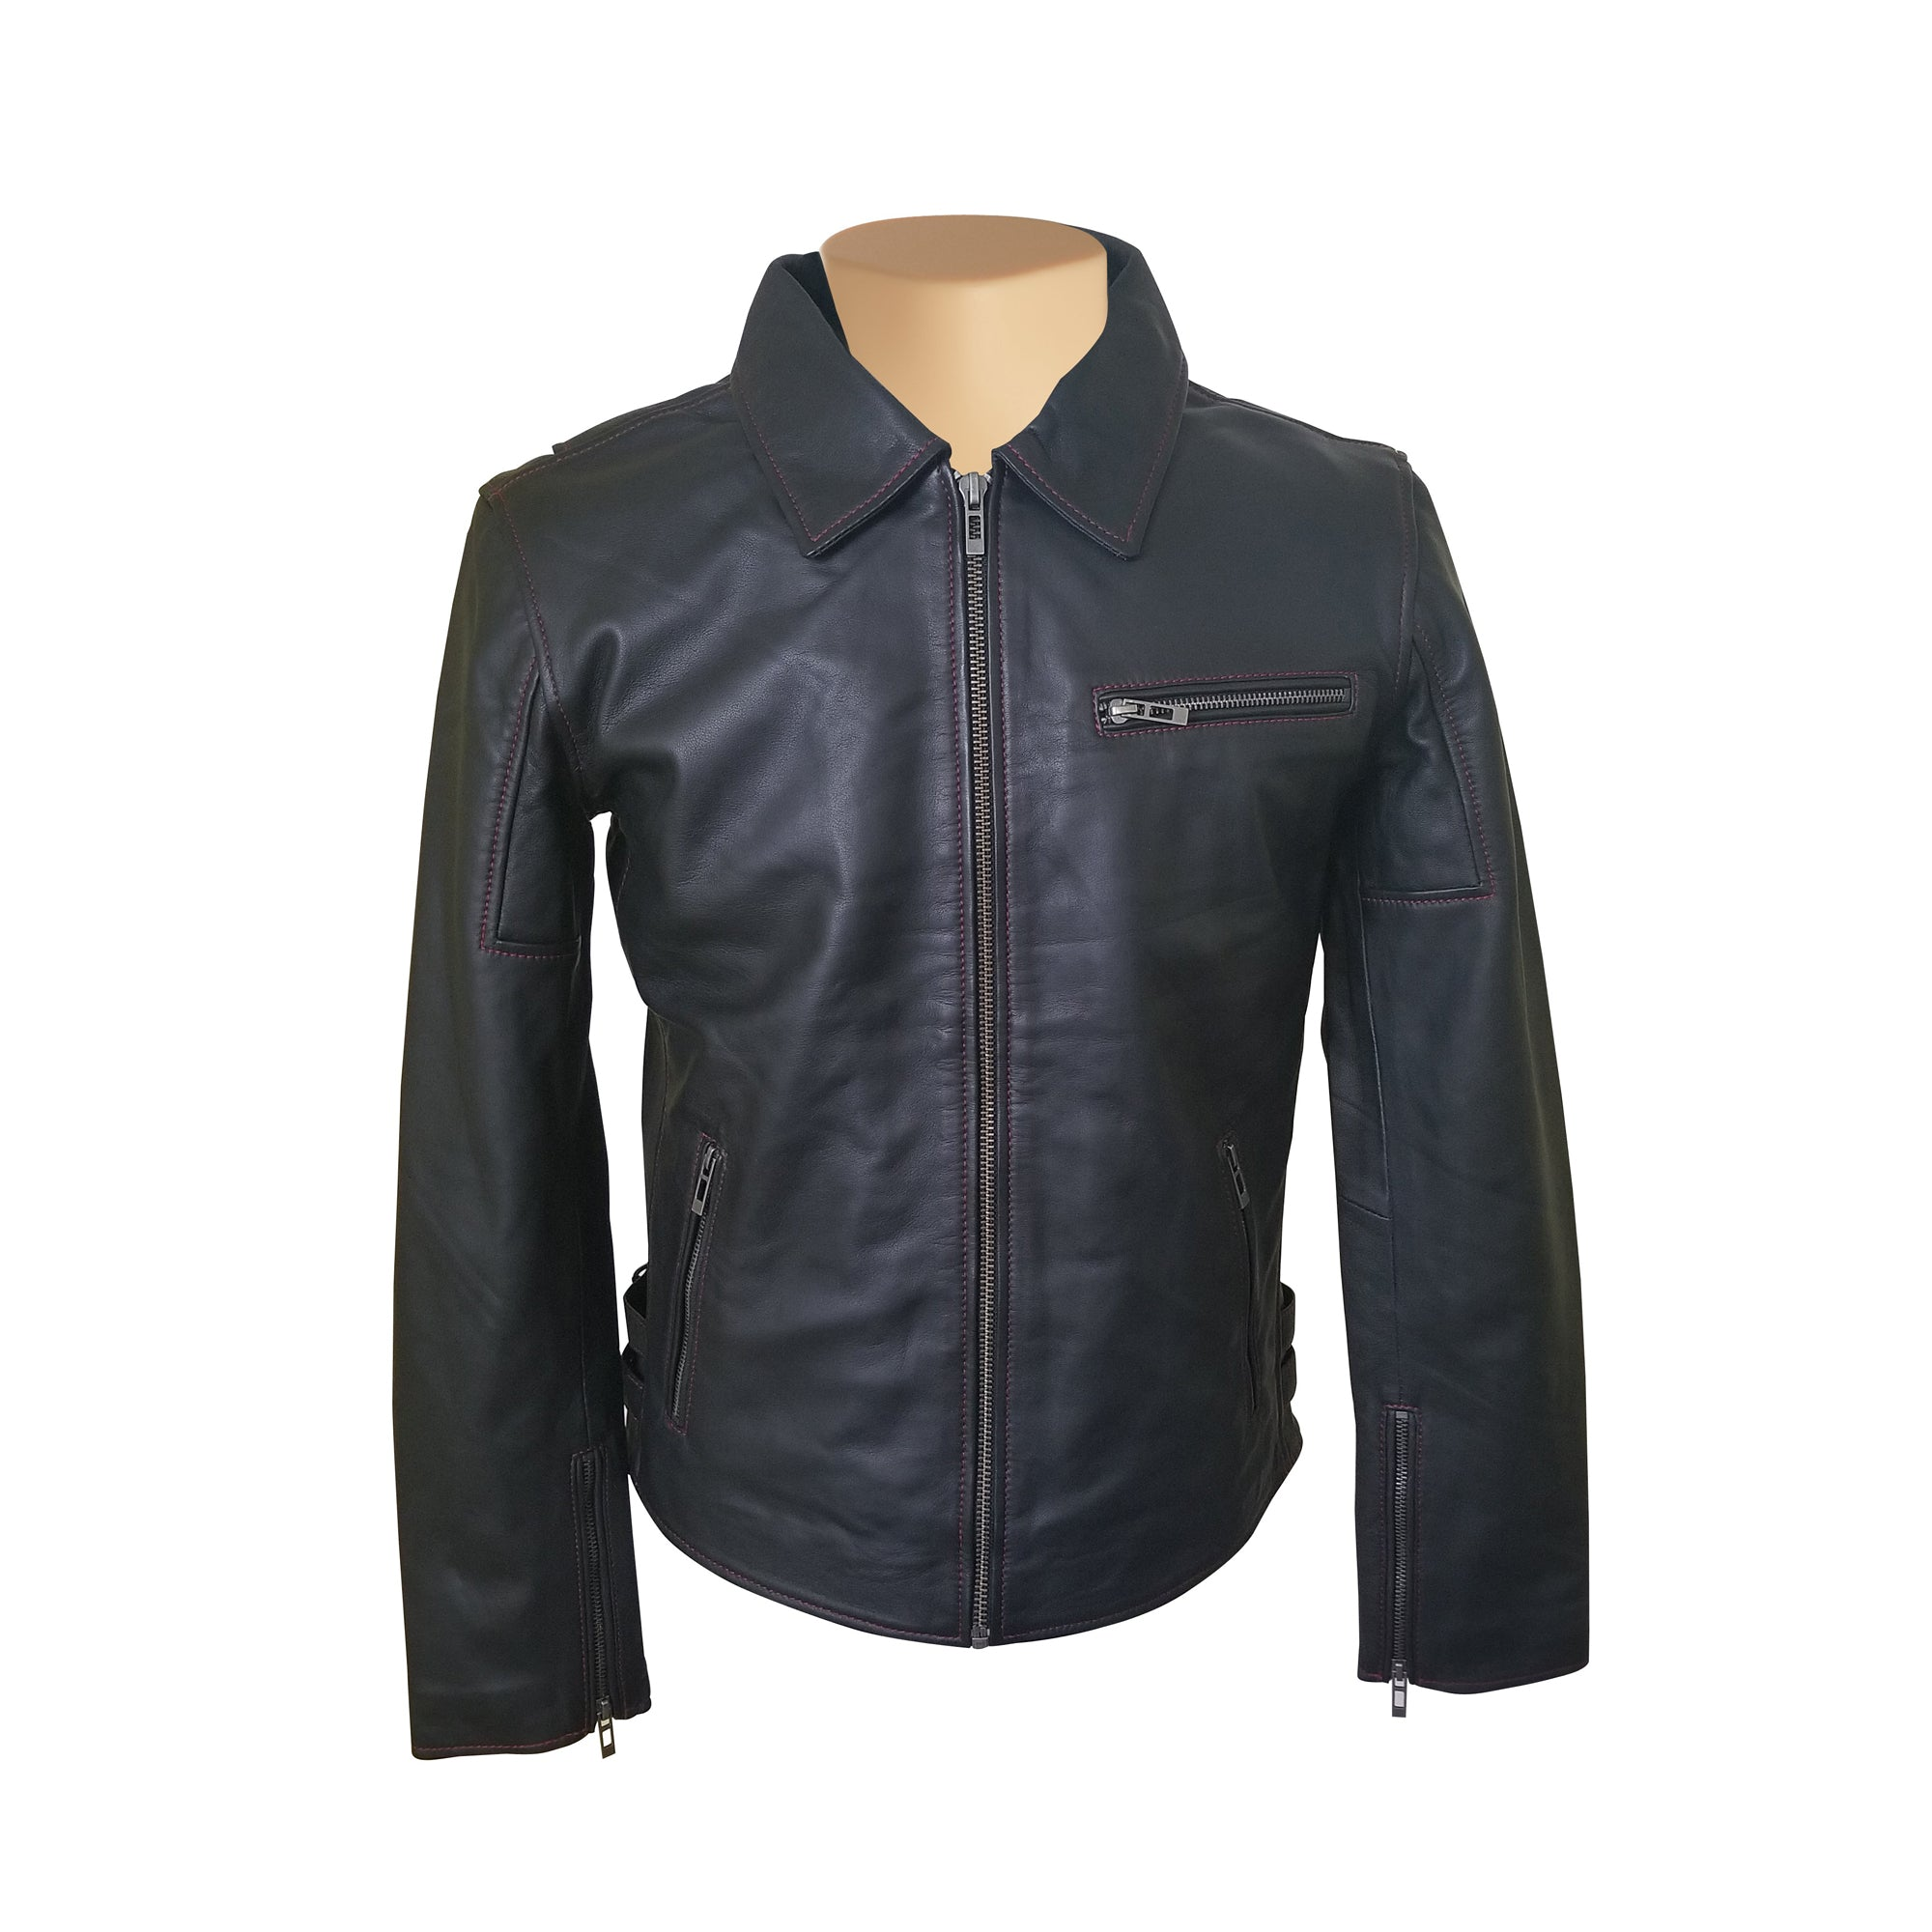 Bonnie's black leather jacket with red stitching